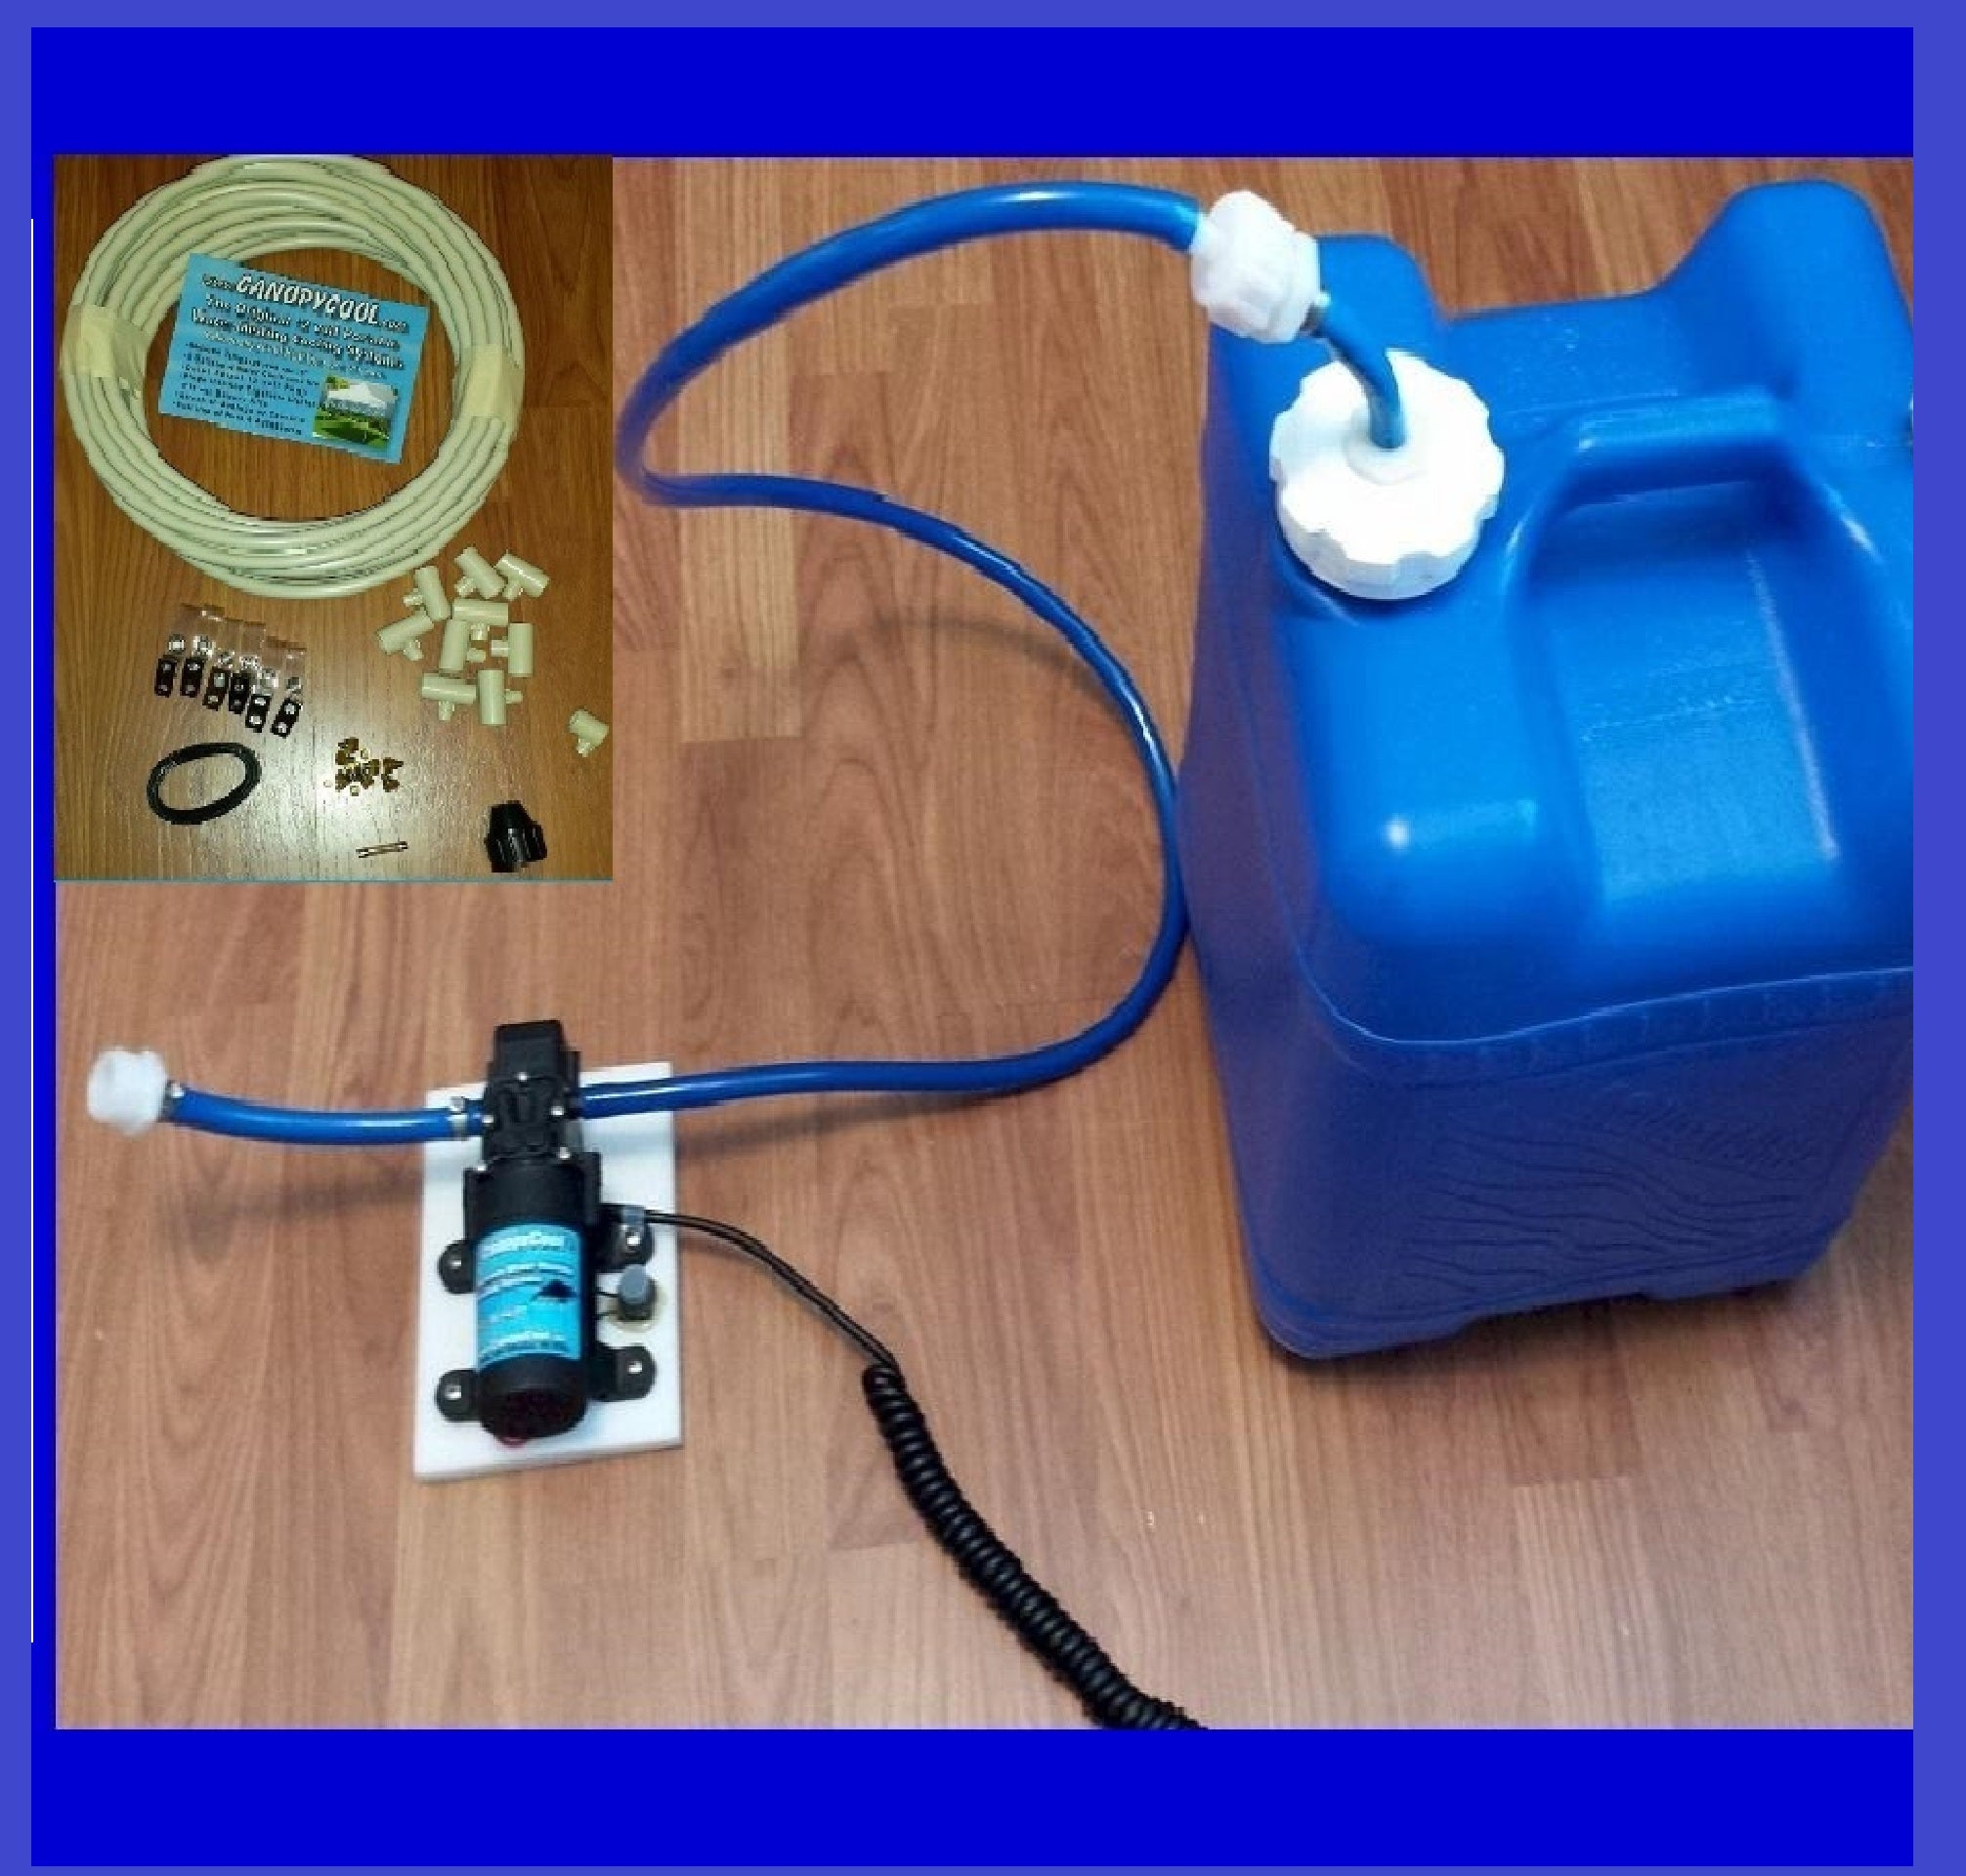 BACK ORDERED TILL  Sept 1st. CPA7 Pump Assembly Misting System w/7 Gal Carrier -The Original System Made in USA!! You cut and assemble to your specific needs!